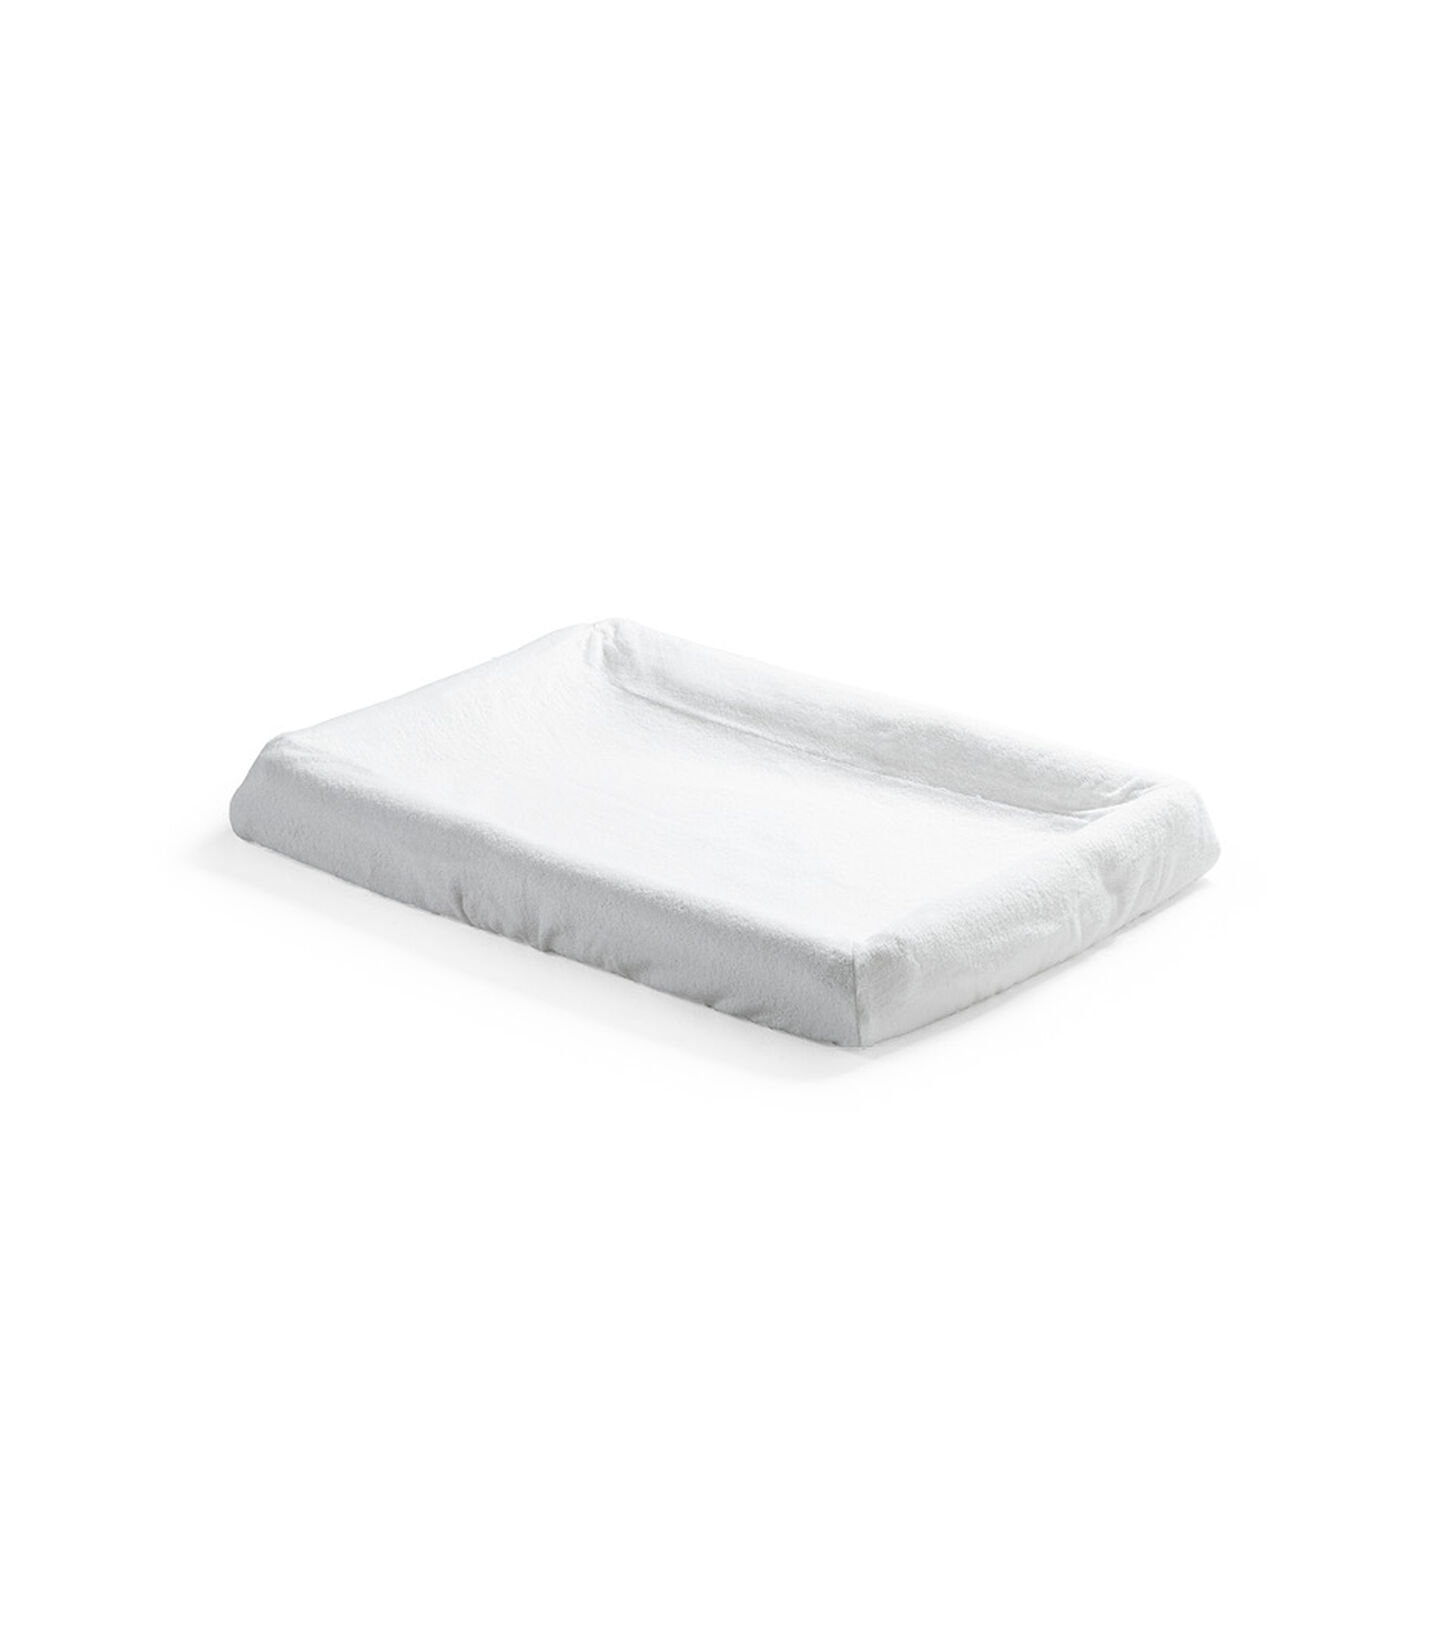 Stokke® Home™ Changer Mattress Cover 2pc White, , mainview view 2